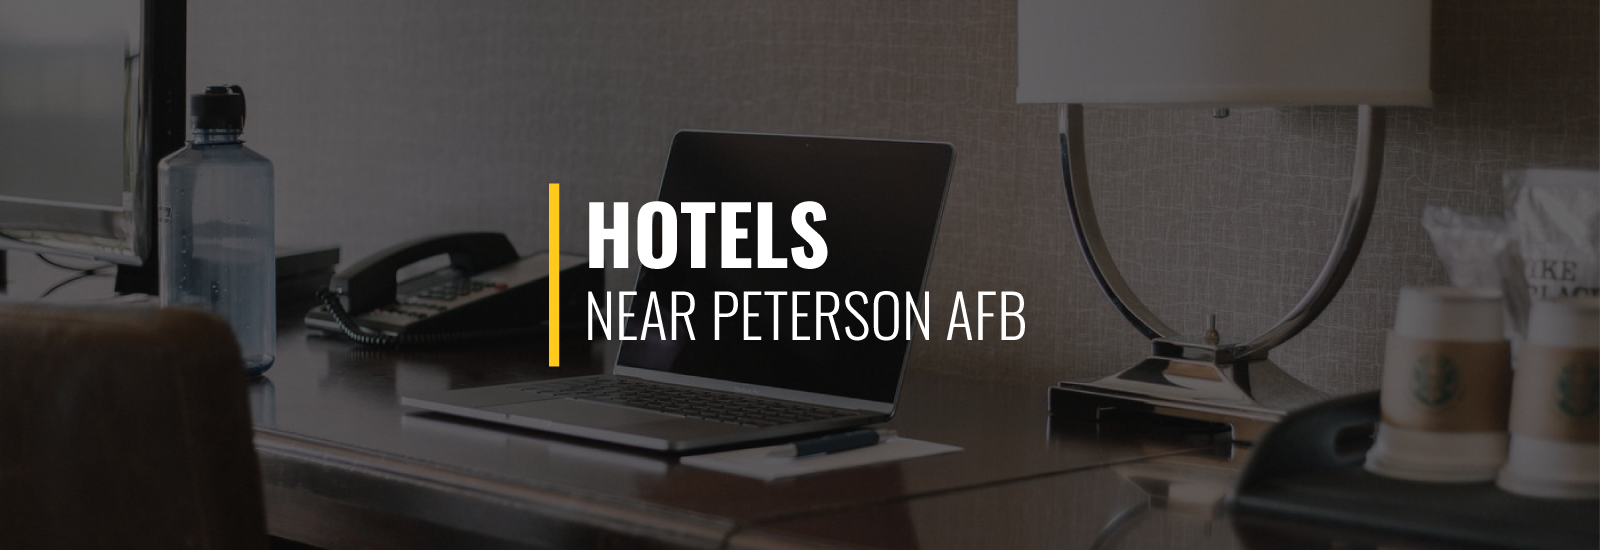 Hotels Near Peterson AFB